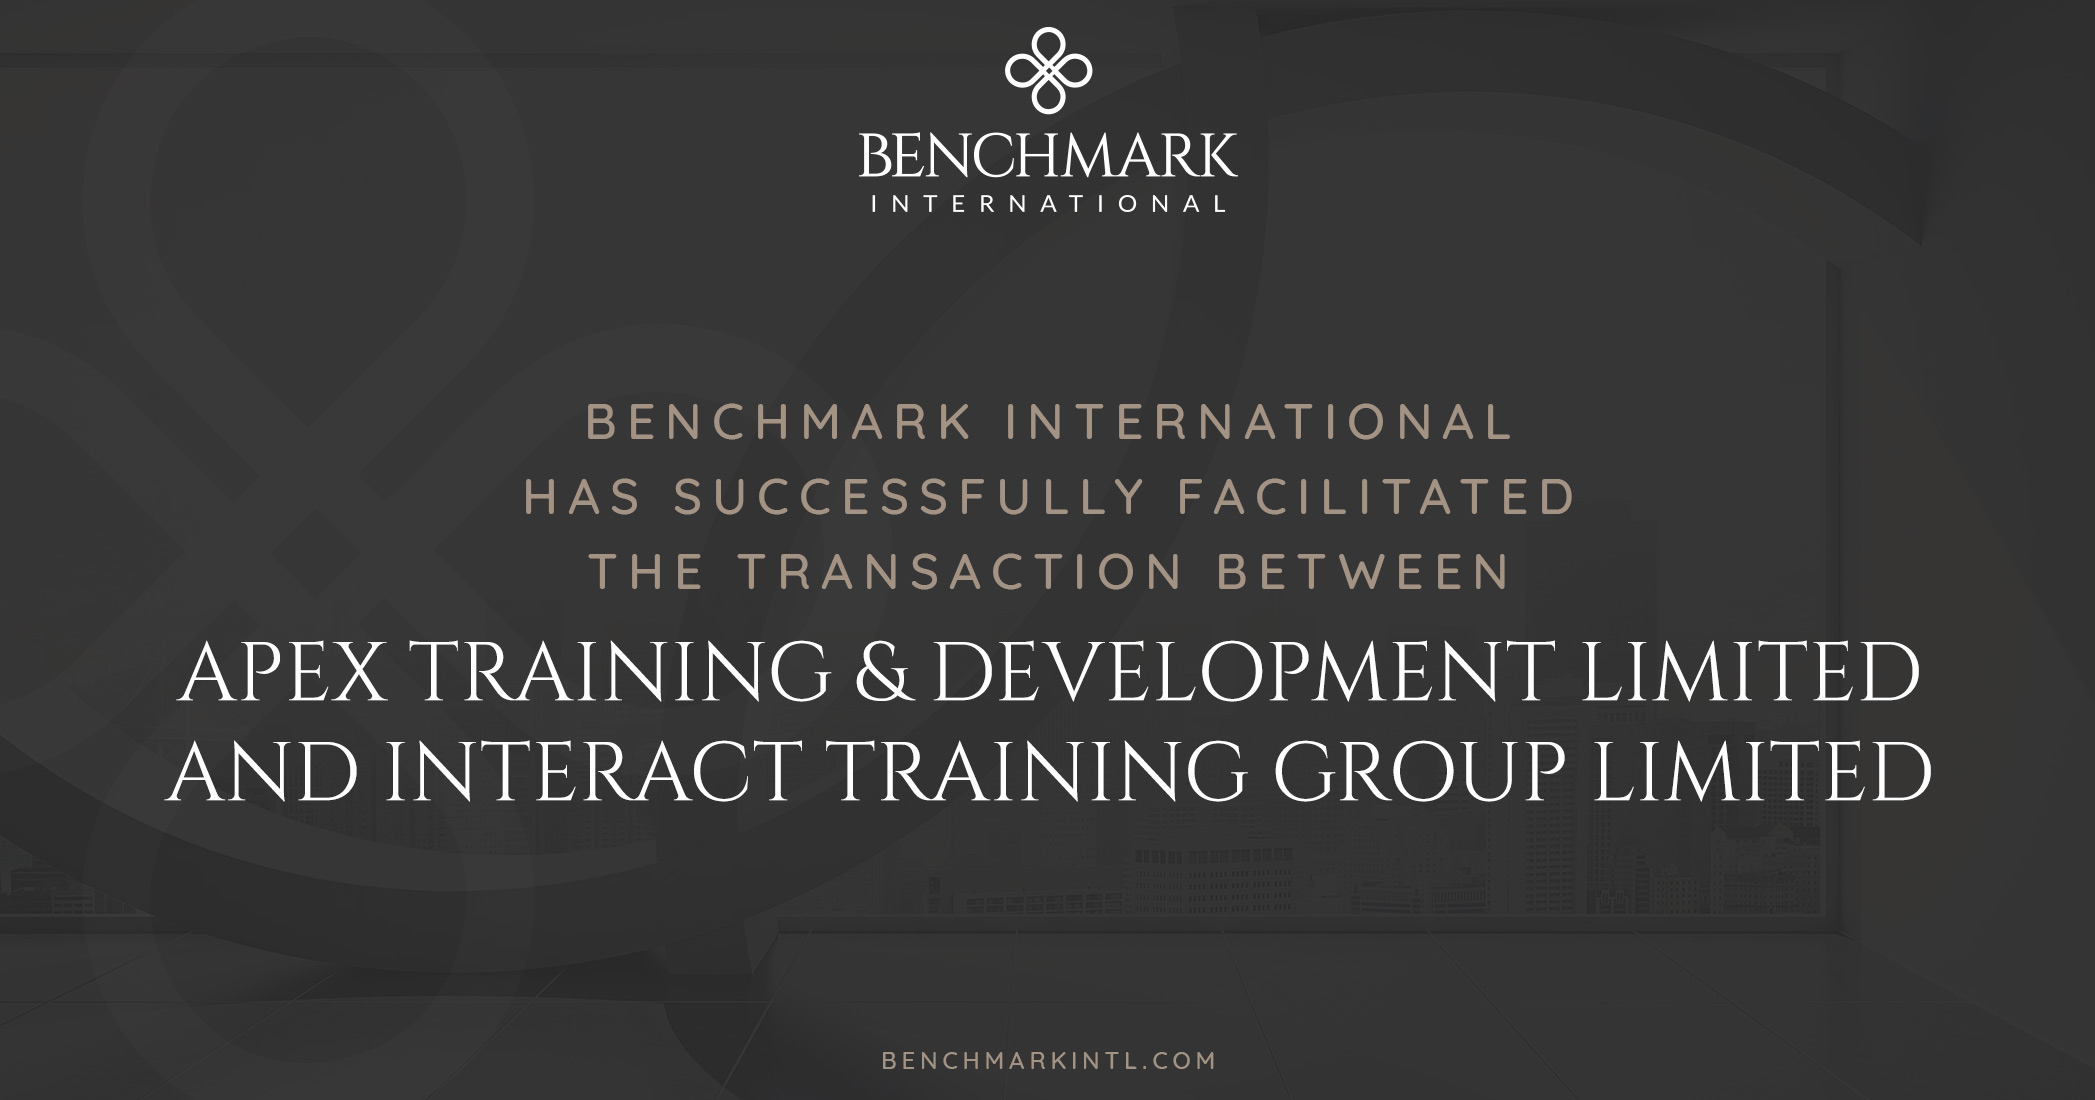 Benchmark International Successfully Facilitated the Transaction Between Apex Training & Development Limited and Interact Training Group Limited